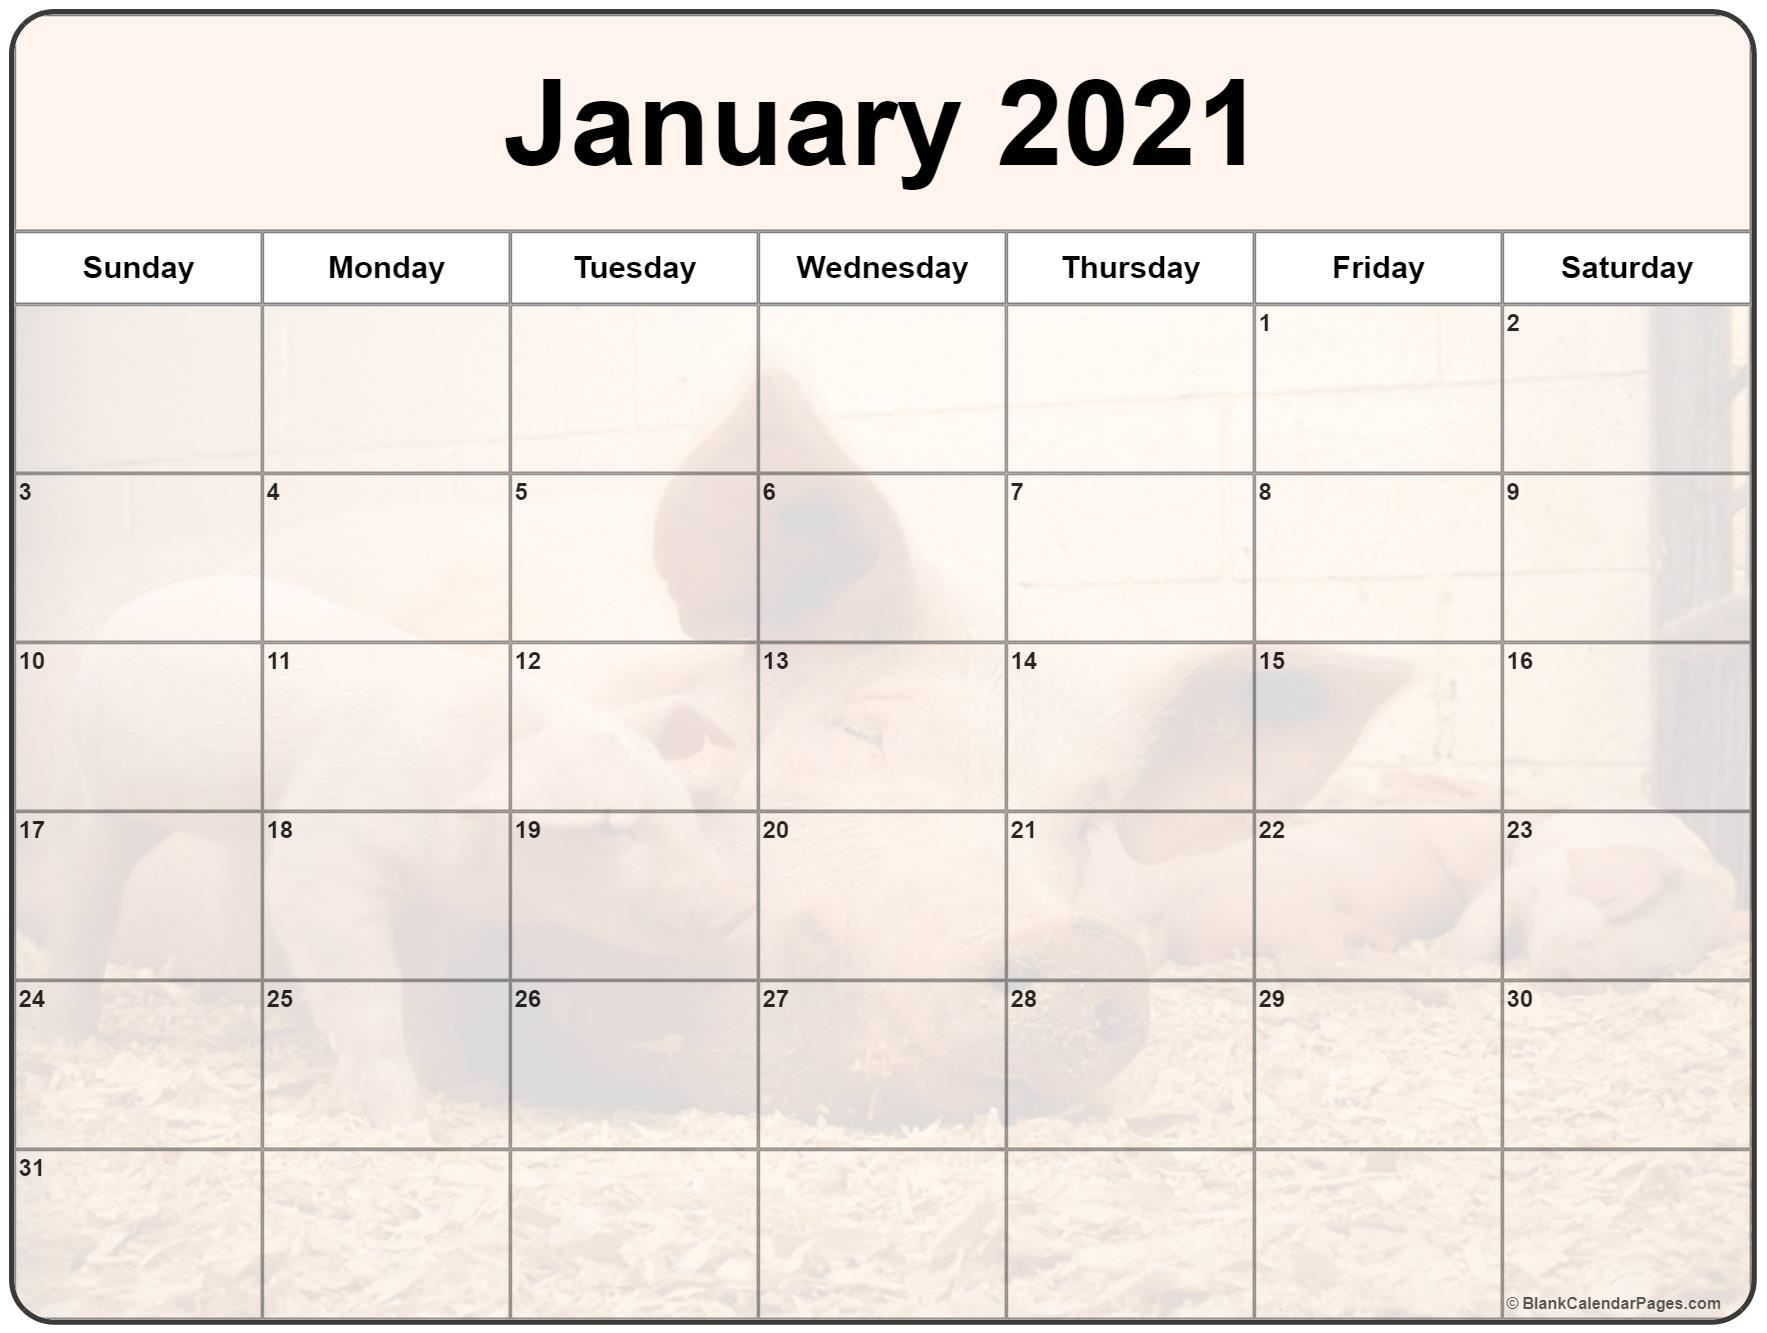 Collection Of January 2021 Photo Calendars With Image Filters 3